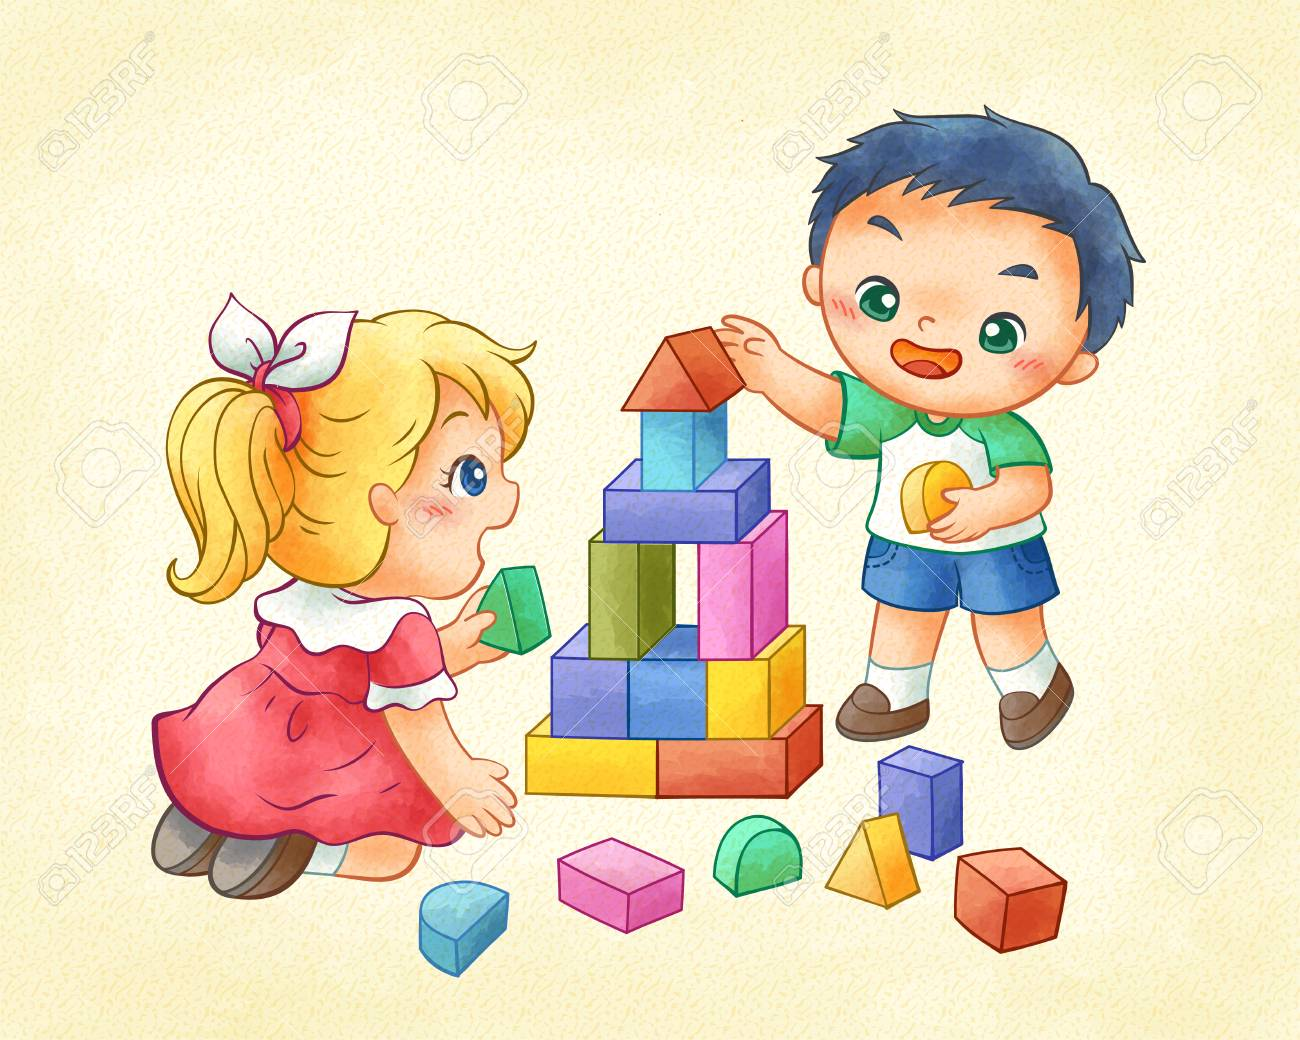 Cute children playing colorful building blocks in line art.